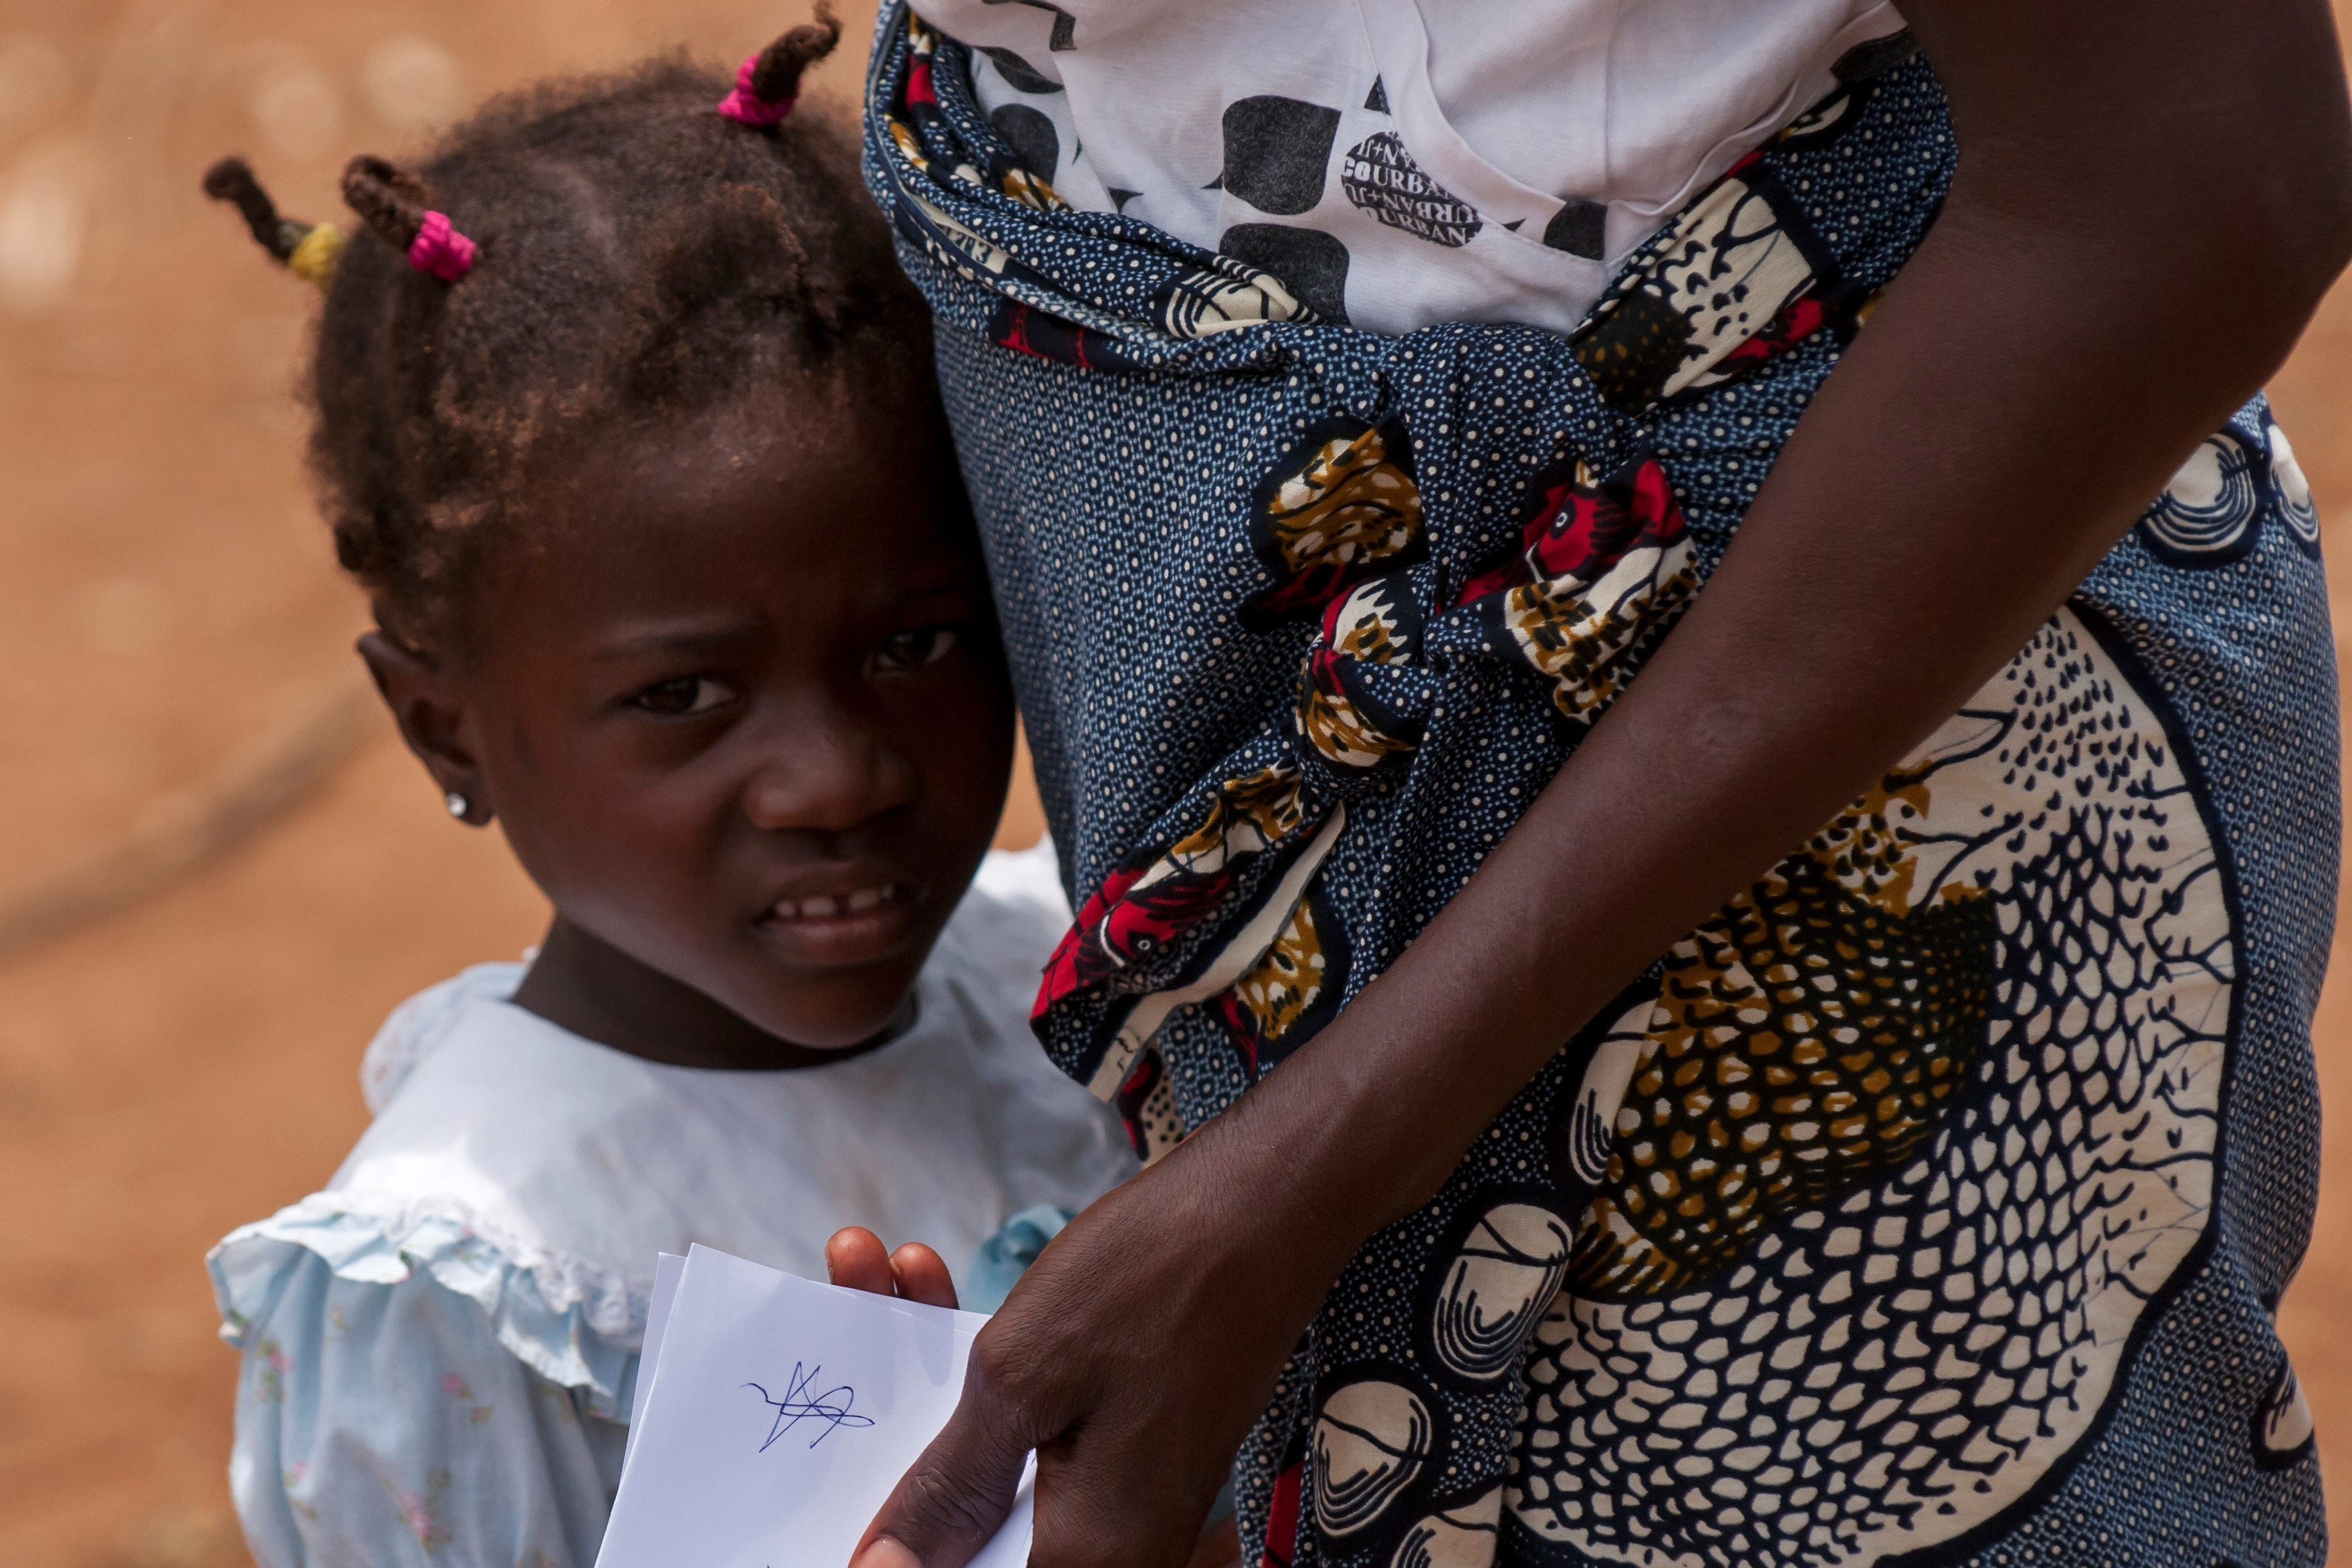 A child waits with her family outside one of the field hospital clinics in the village of Ceramica during the PAMBALA 2017 exercise Dec. 13, 2017, in Bengo Province, Angola. By participating in this trilateral medical engagement alongside the Angolan and Serbian Armed Forces, the Ohio National Guard is gaining real-world experience and training on tropical diseases while also providing valuable coaching and mentorship on disease management and containment. (Ohio National Guard photo by Staff Sgt. Wendy Kuhn)